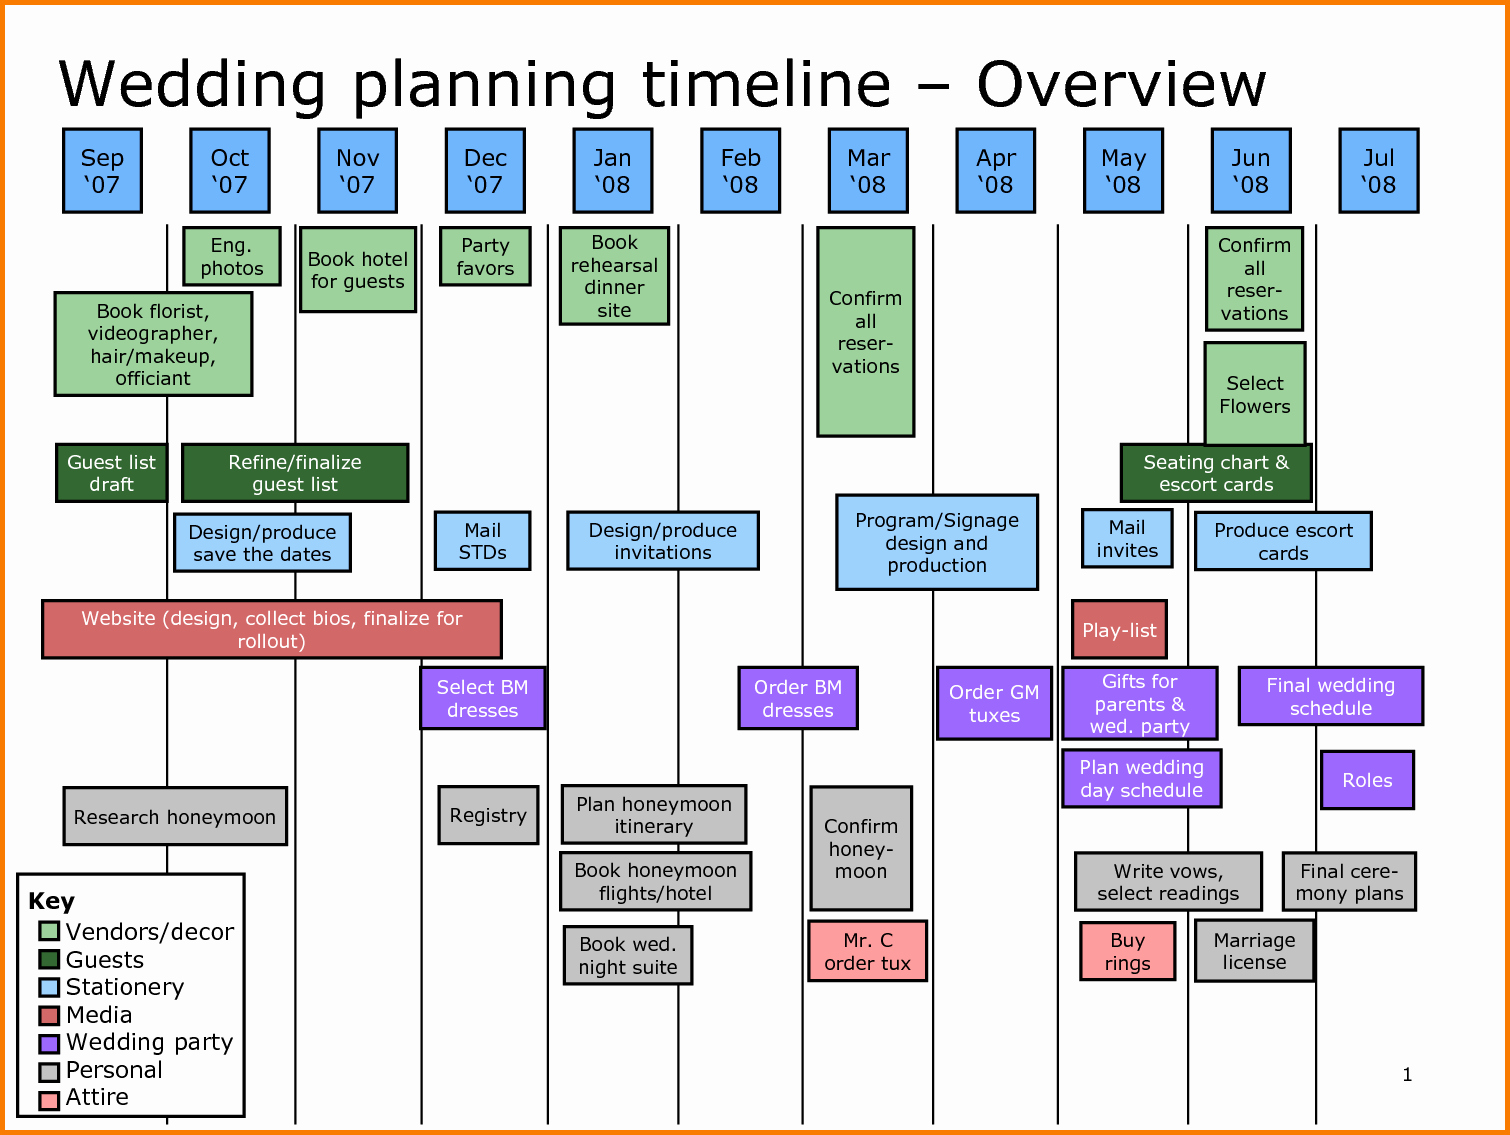 Wedding Planning Timeline Template Excel New Wedding Planning Timeline Template